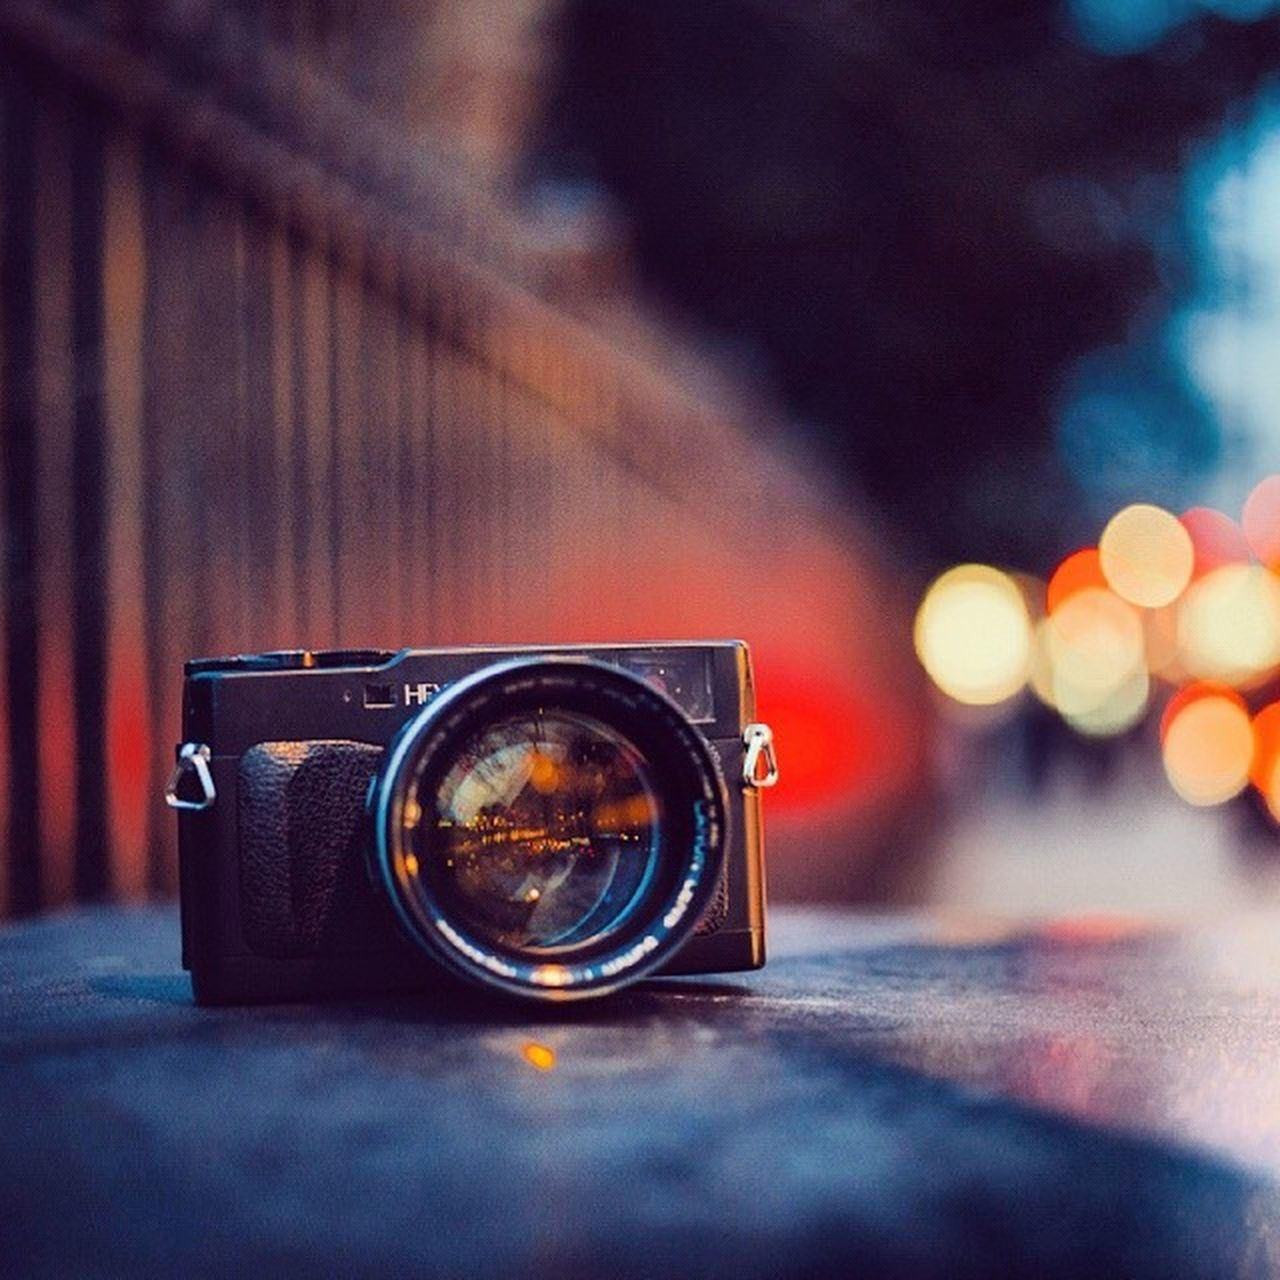 photography themes, camera - photographic equipment, technology, photographing, single object, close-up, focus on foreground, selective focus, table, retro styled, camera, digital camera, old-fashioned, no people, indoors, illuminated, modern, slr camera, digital single-lens reflex camera, day